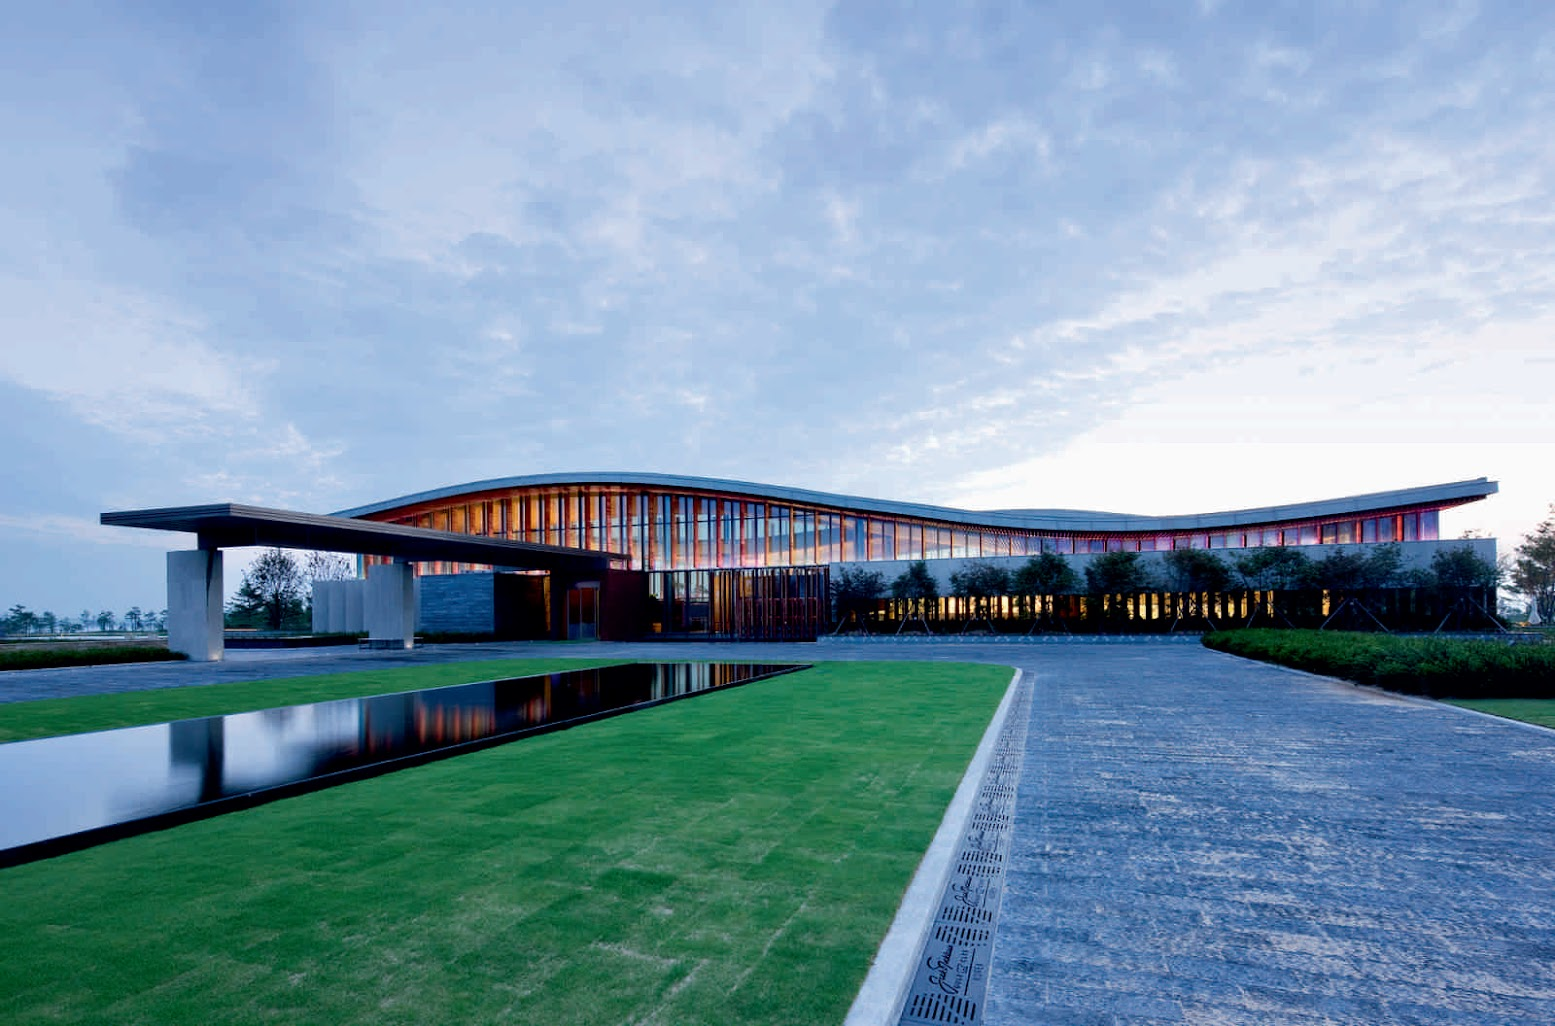 Songdo-dong, Yeonsu-gu, Incheon, Corea del Sud: [JACK NICKLAUS GOLF CLUB BY YAZDANI STUDIO]